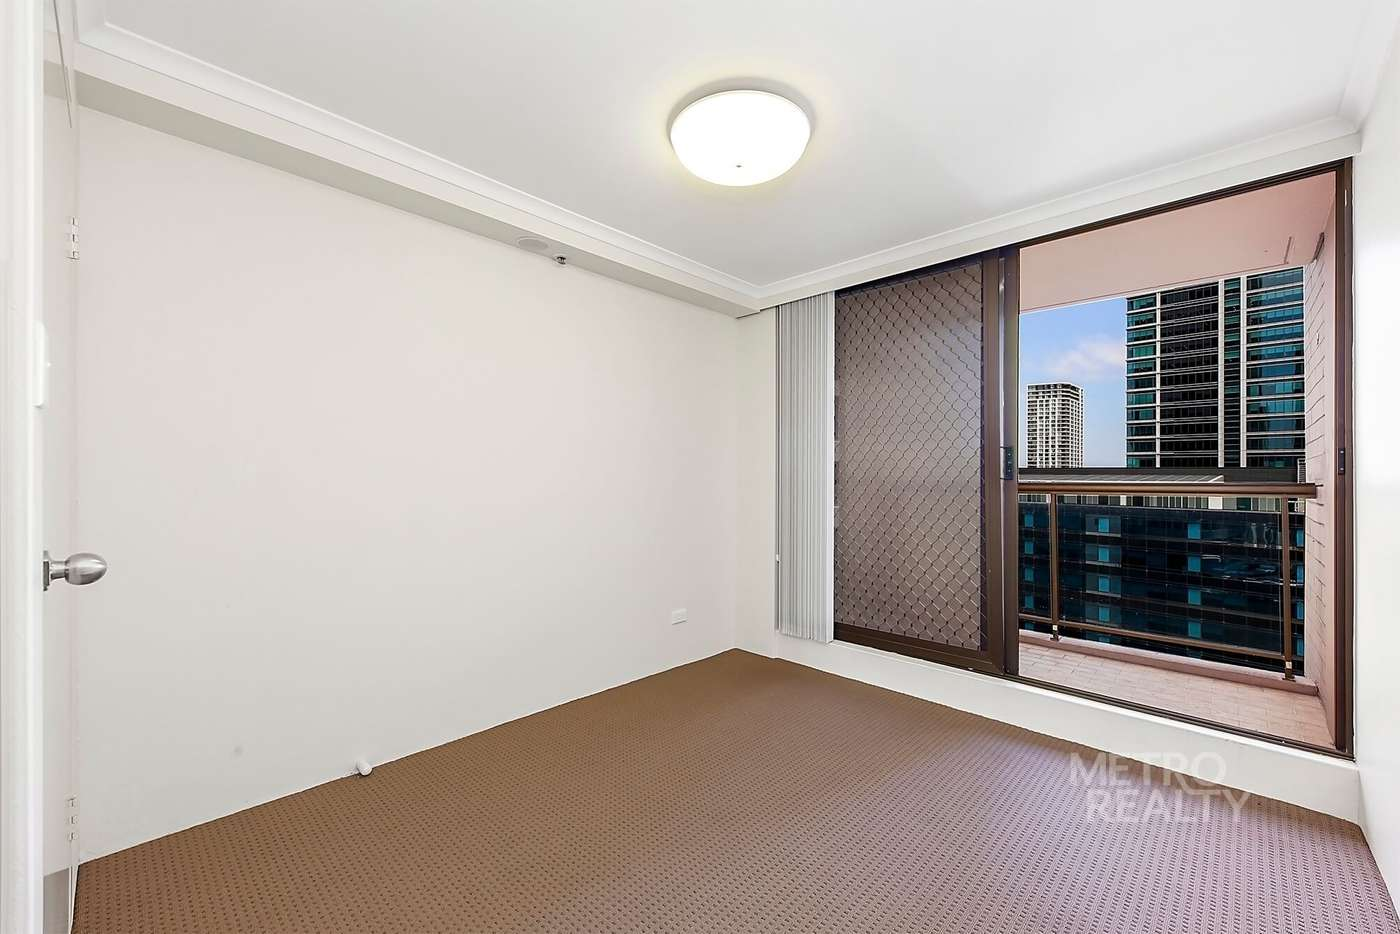 Sixth view of Homely apartment listing, 30/267 Castlereagh Street, Sydney NSW 2000